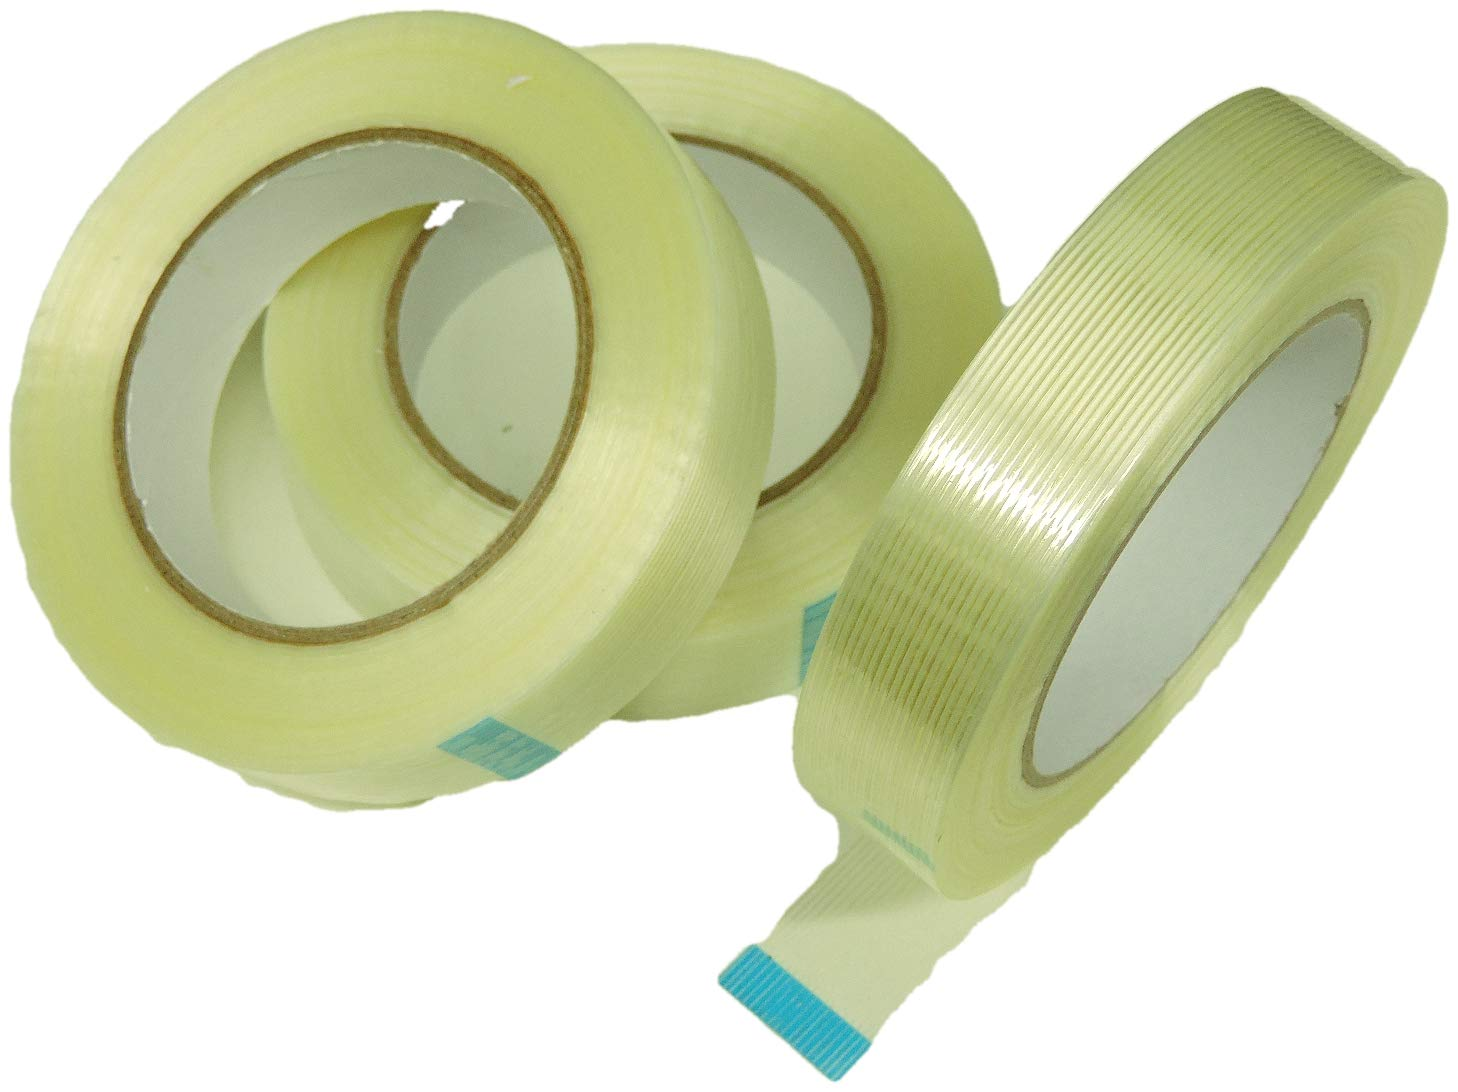 Heavy Duty Packing Tape Filament Reinforced Tape Rolls Clear 4.0 Mil Thick 3//4 Inch x 60 Yards 24 Pack